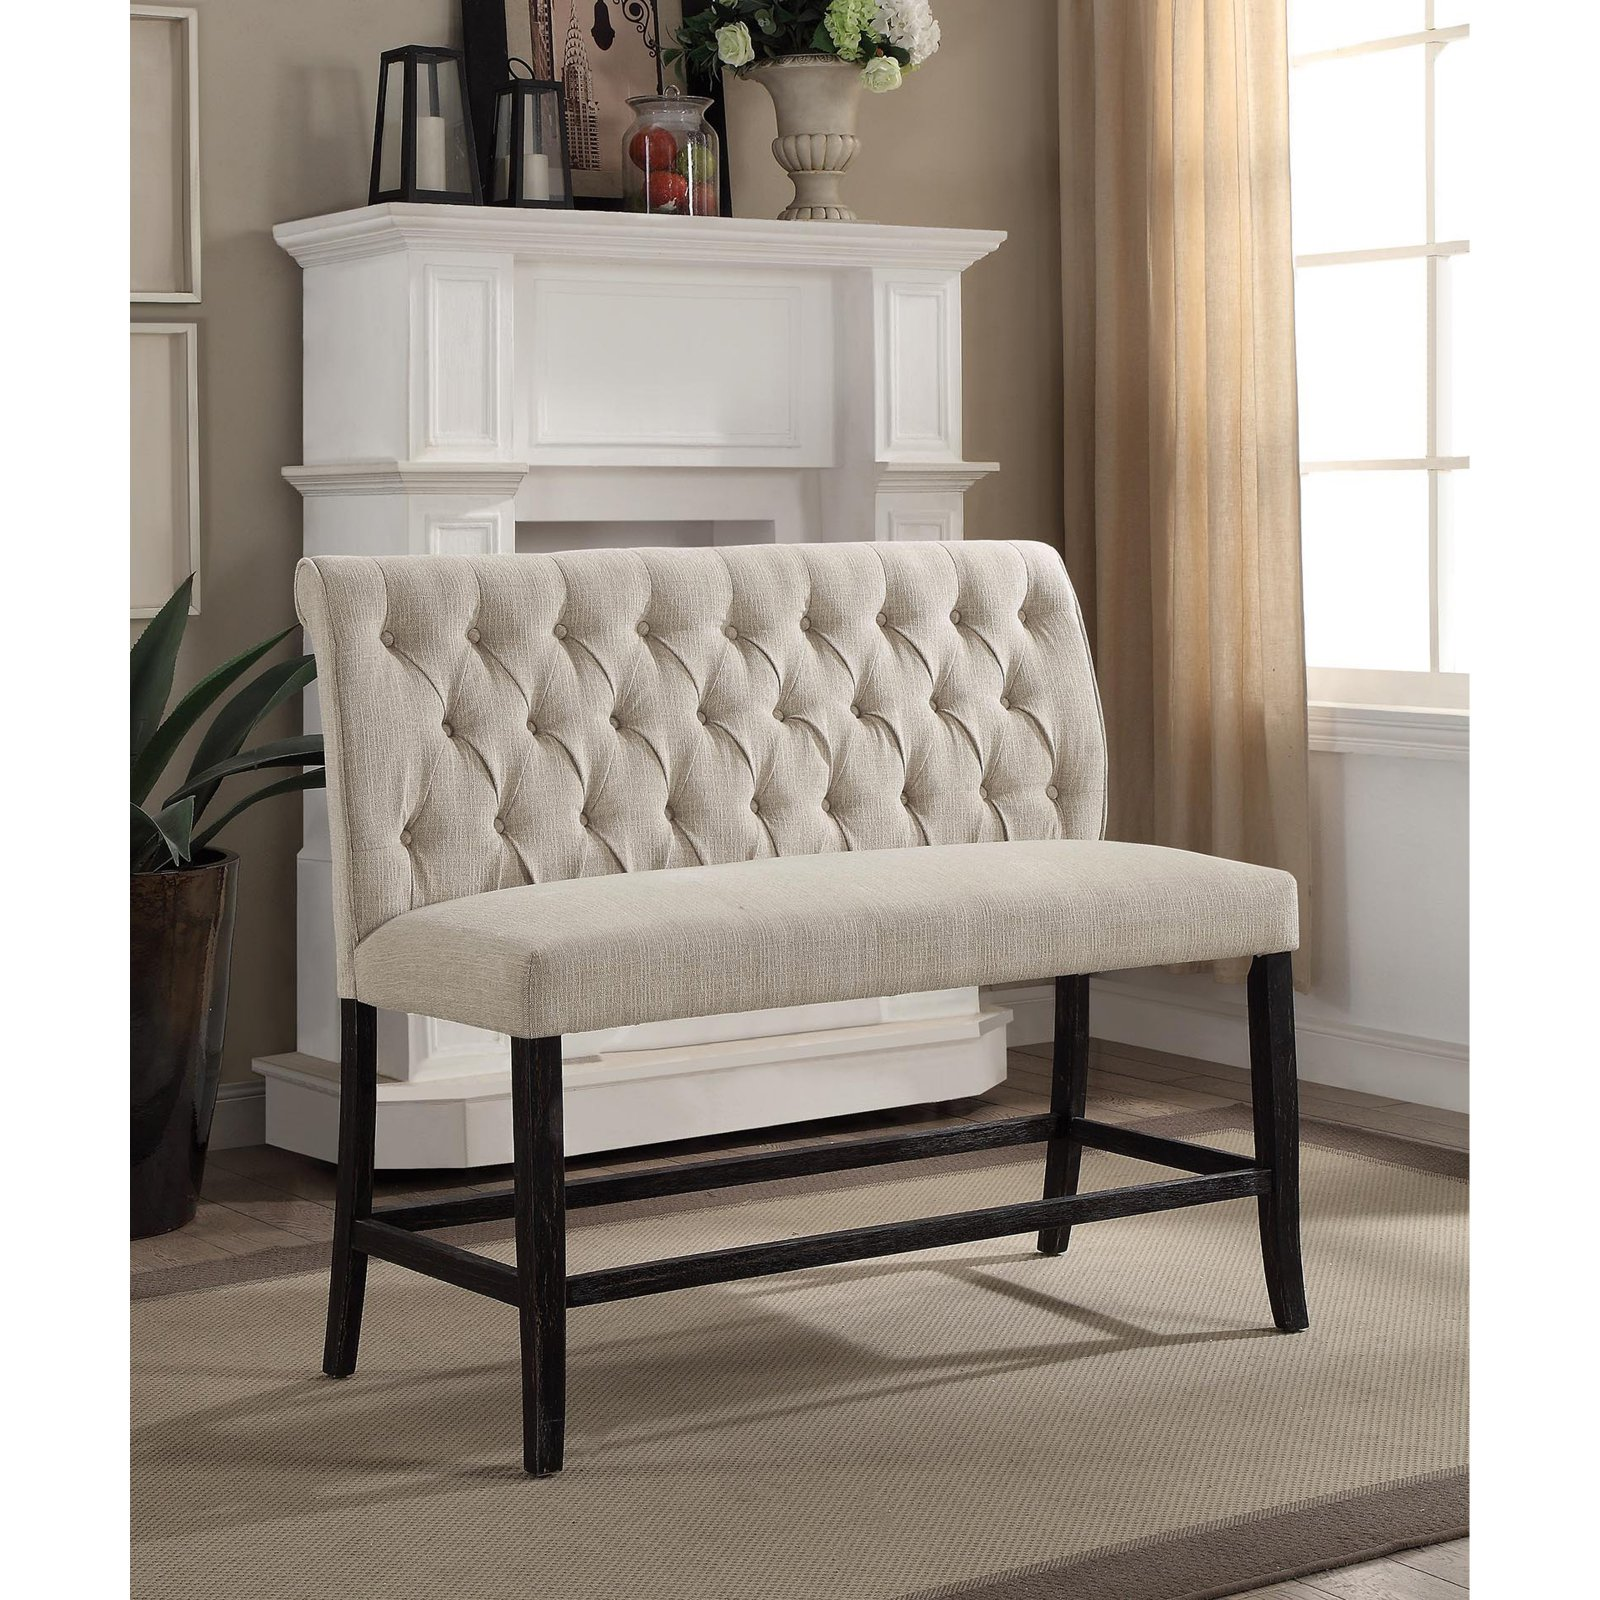 Furniture of America Ferndale Button Tufted Counter Height Bench